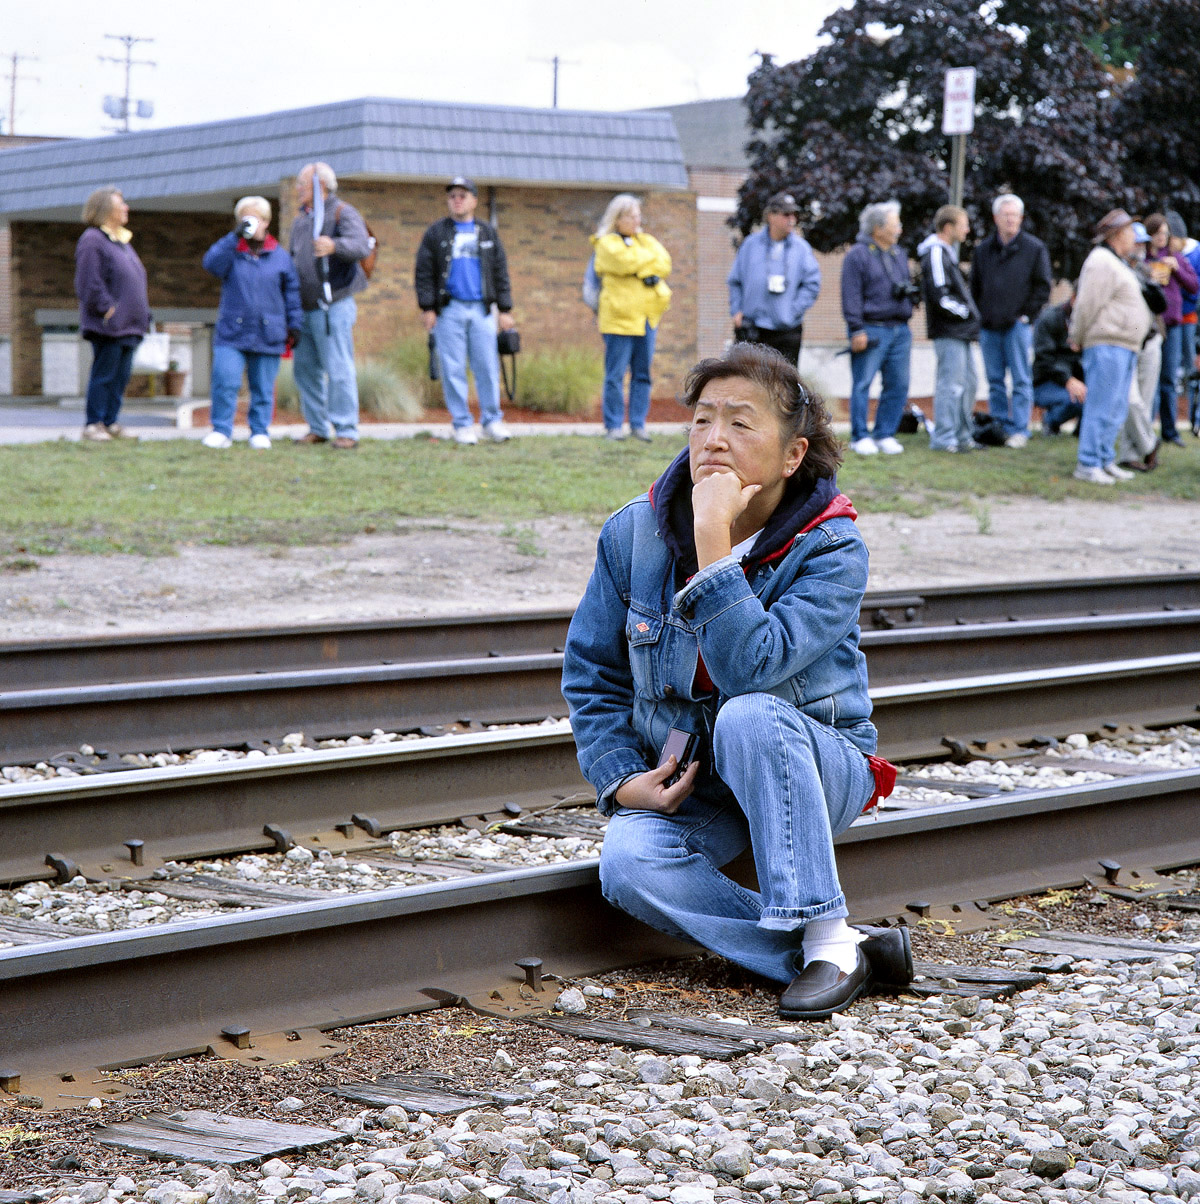 John_Sanderson_13_Waiting for a train, Michigan(2009)